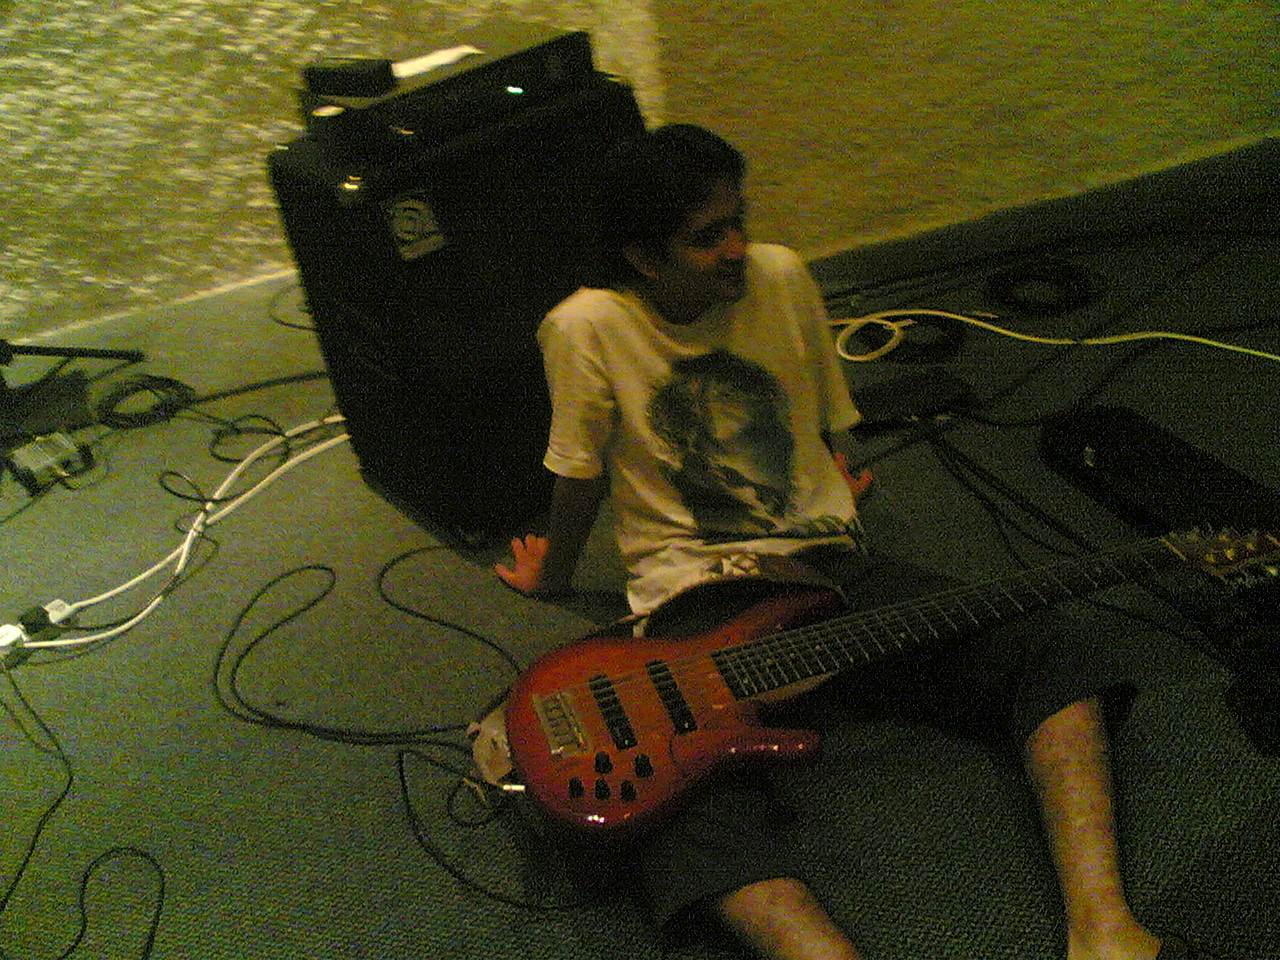 Reymond, superb bassist